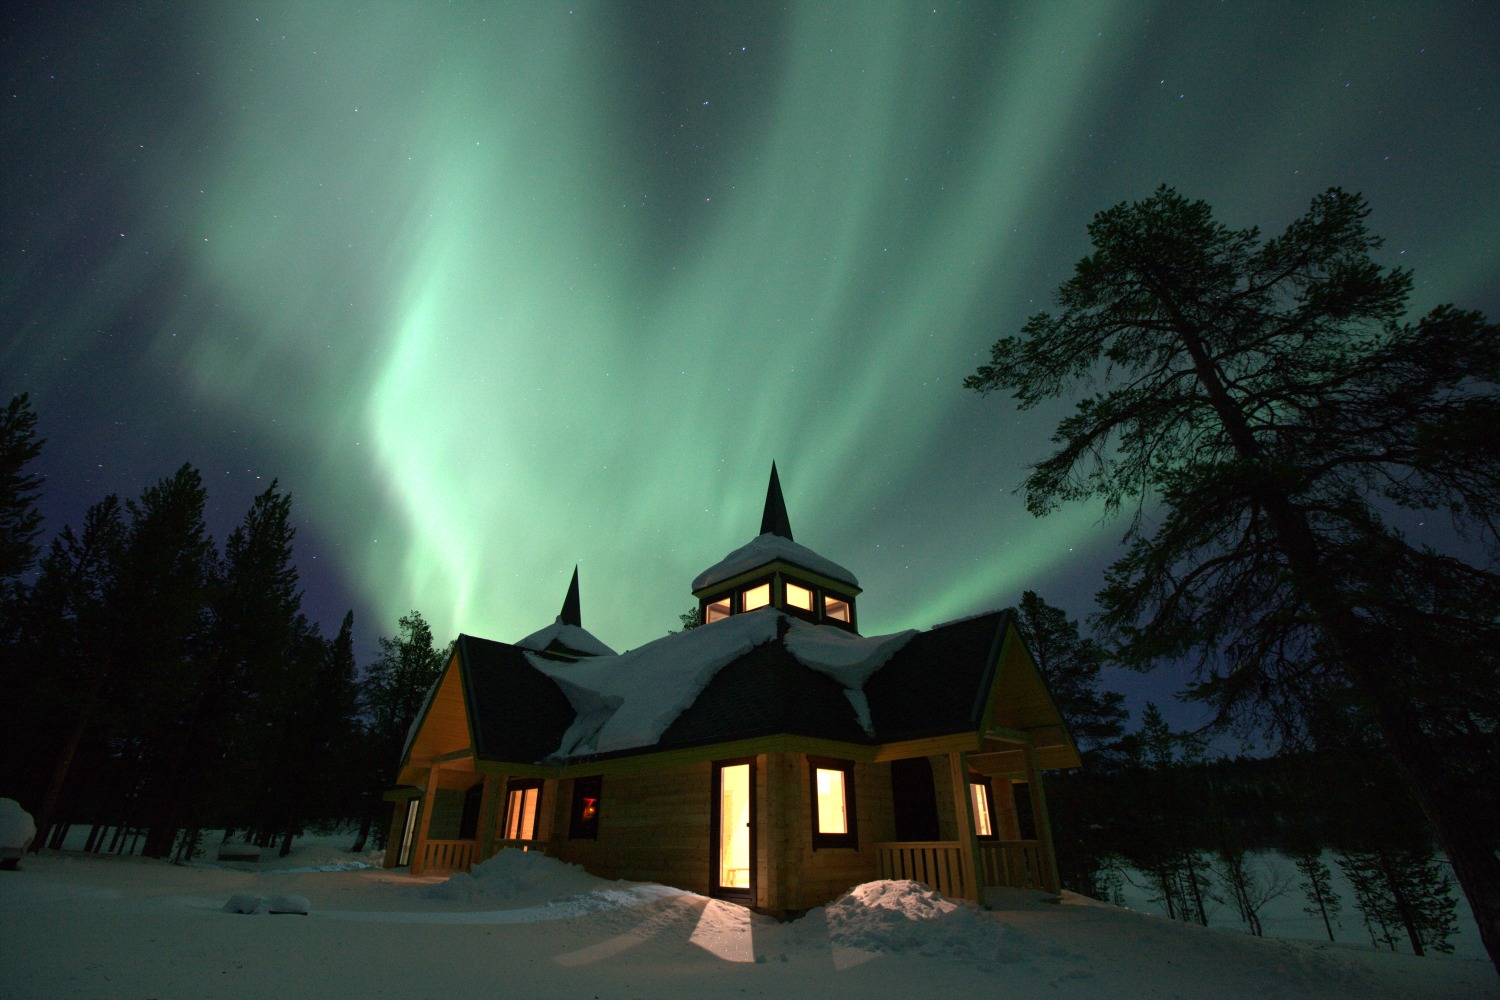 A trip to see the Aurora Borealis the Northern Lights